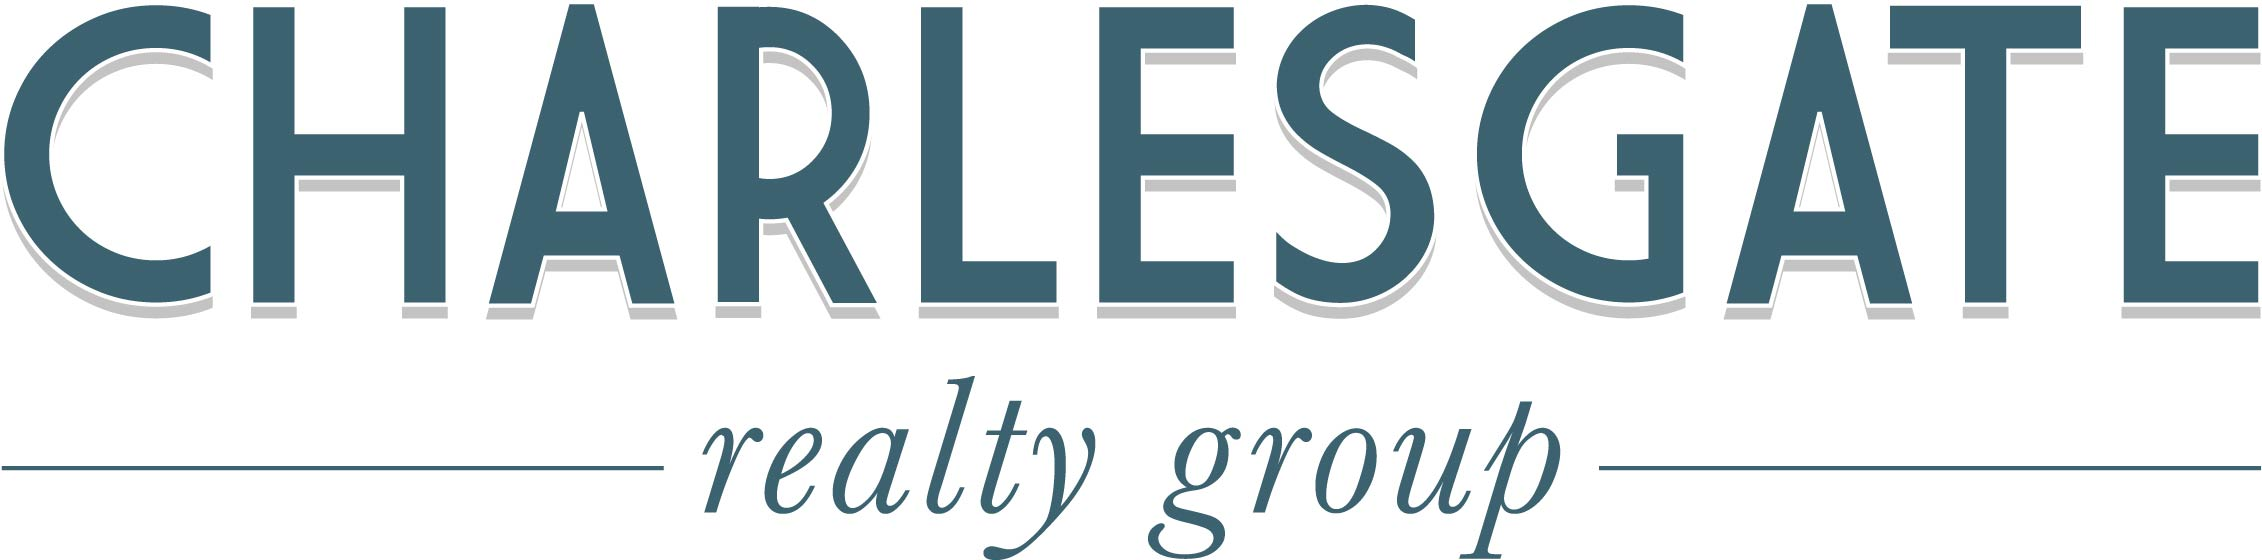 Charlesgate realty group boston real estate brokerage